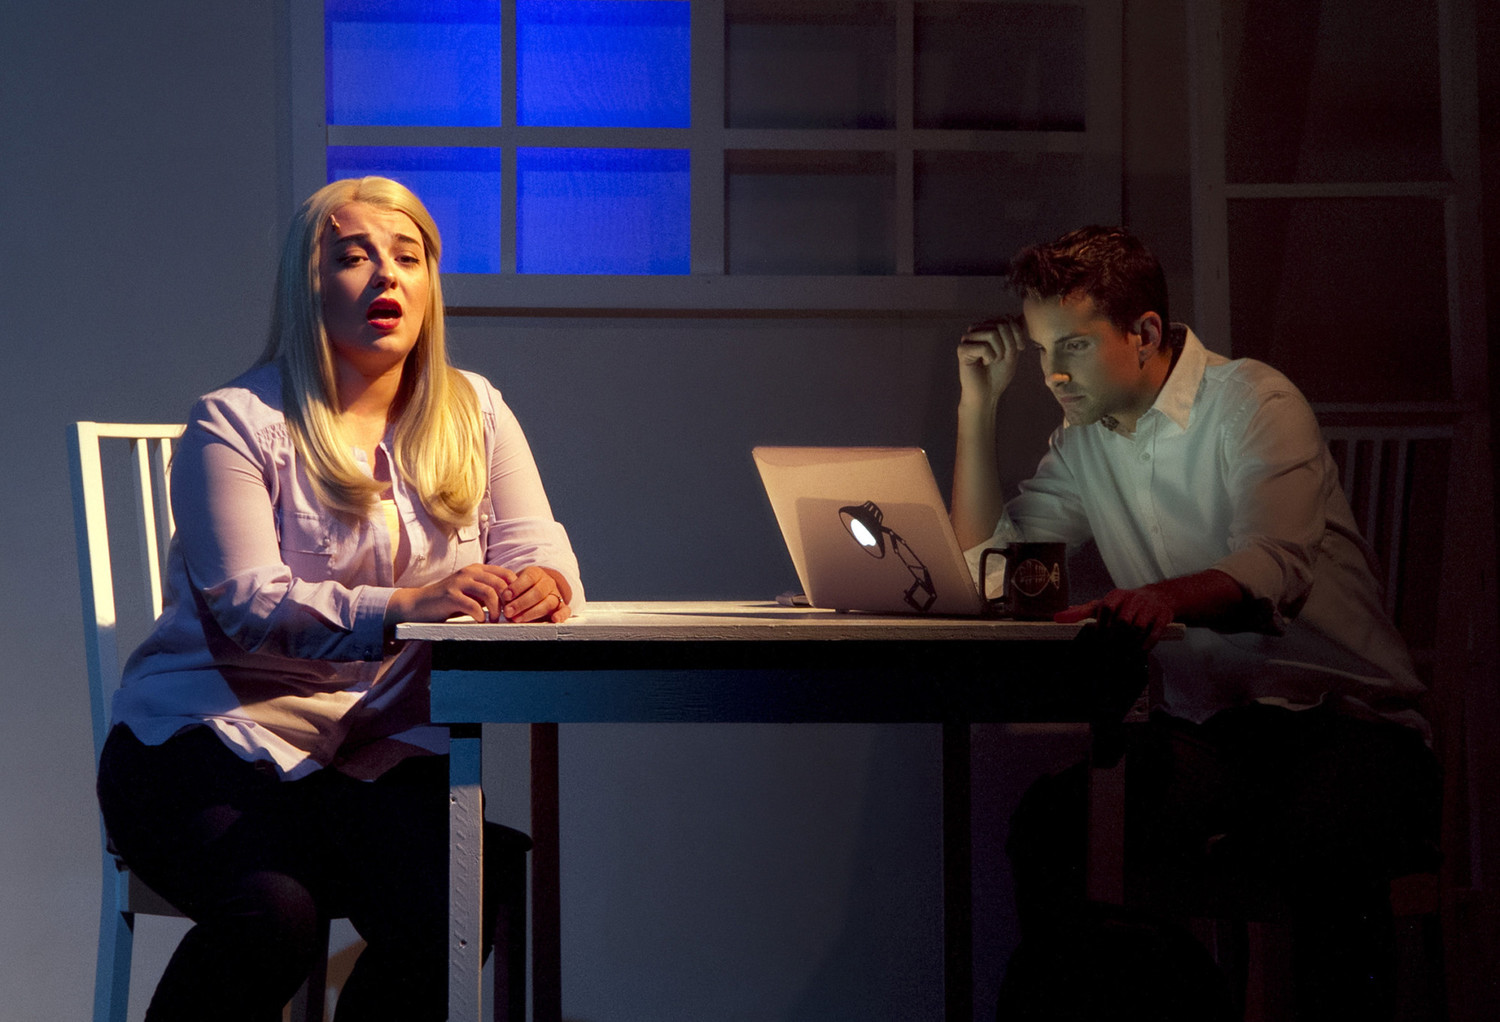 Cathy (Michelle Gendron) and Jaime (Louie Rossetti) share the story of their relationship over the last five years. (Photo: Maria Vartanova)